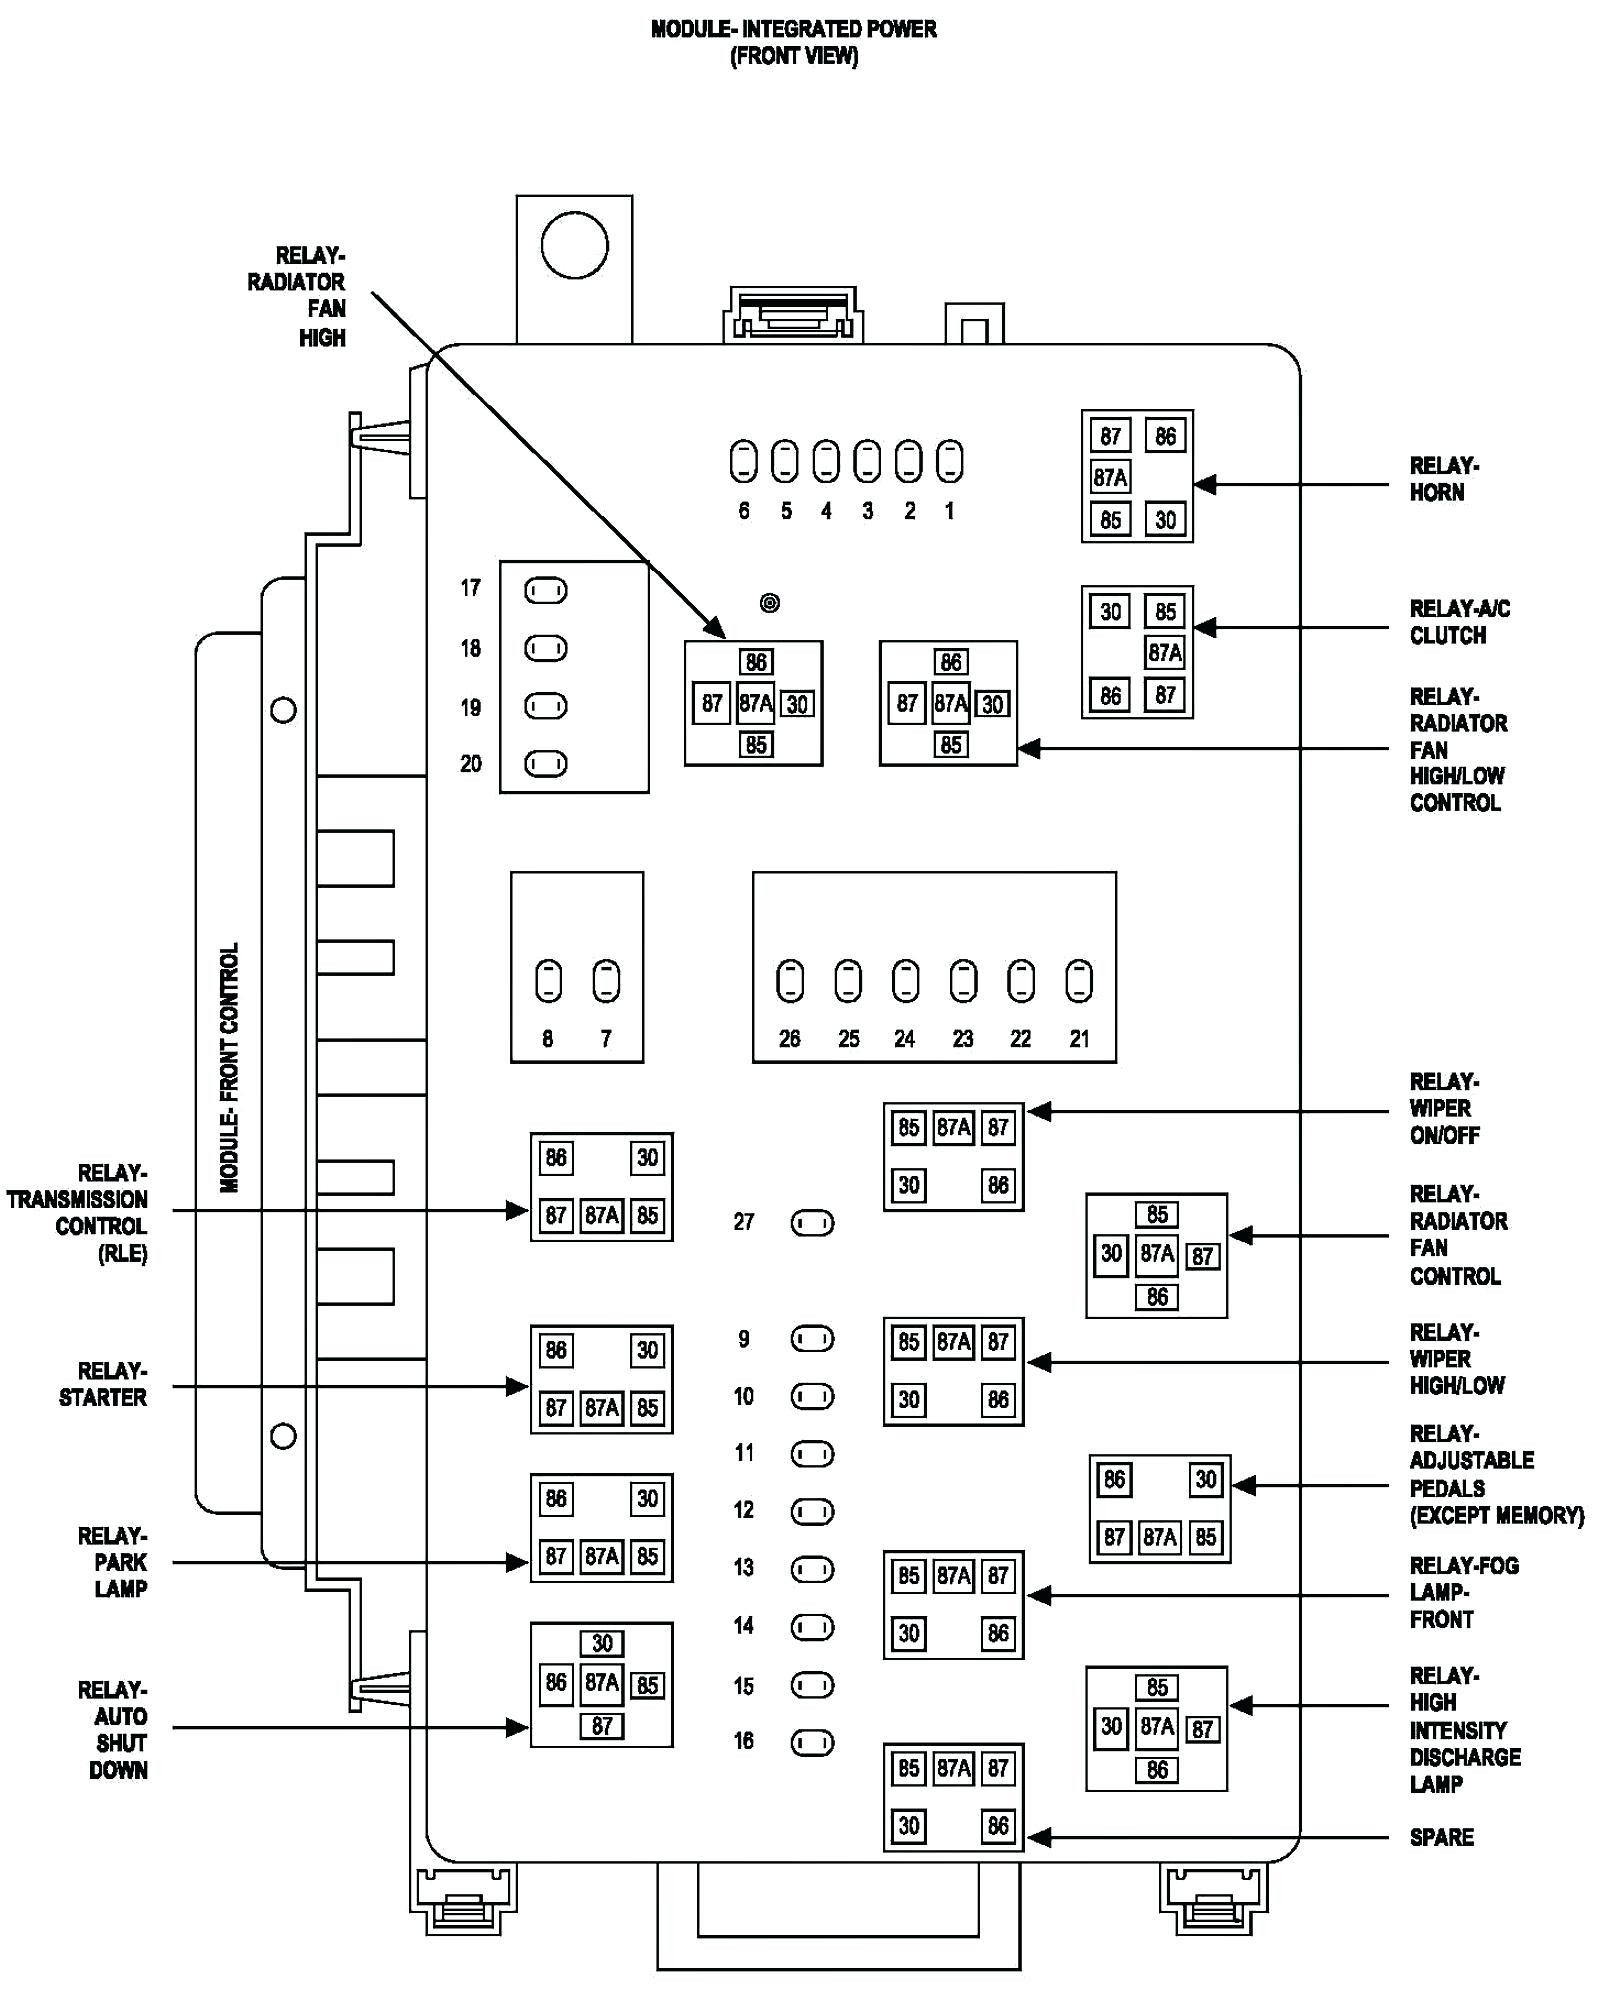 [FPER_4992]  E9E 2007 Dodge Charger Fuse Box Layout | Wiring Library | 2008 Dodge Charger 2 7l Fuse Box |  | Wiring Library